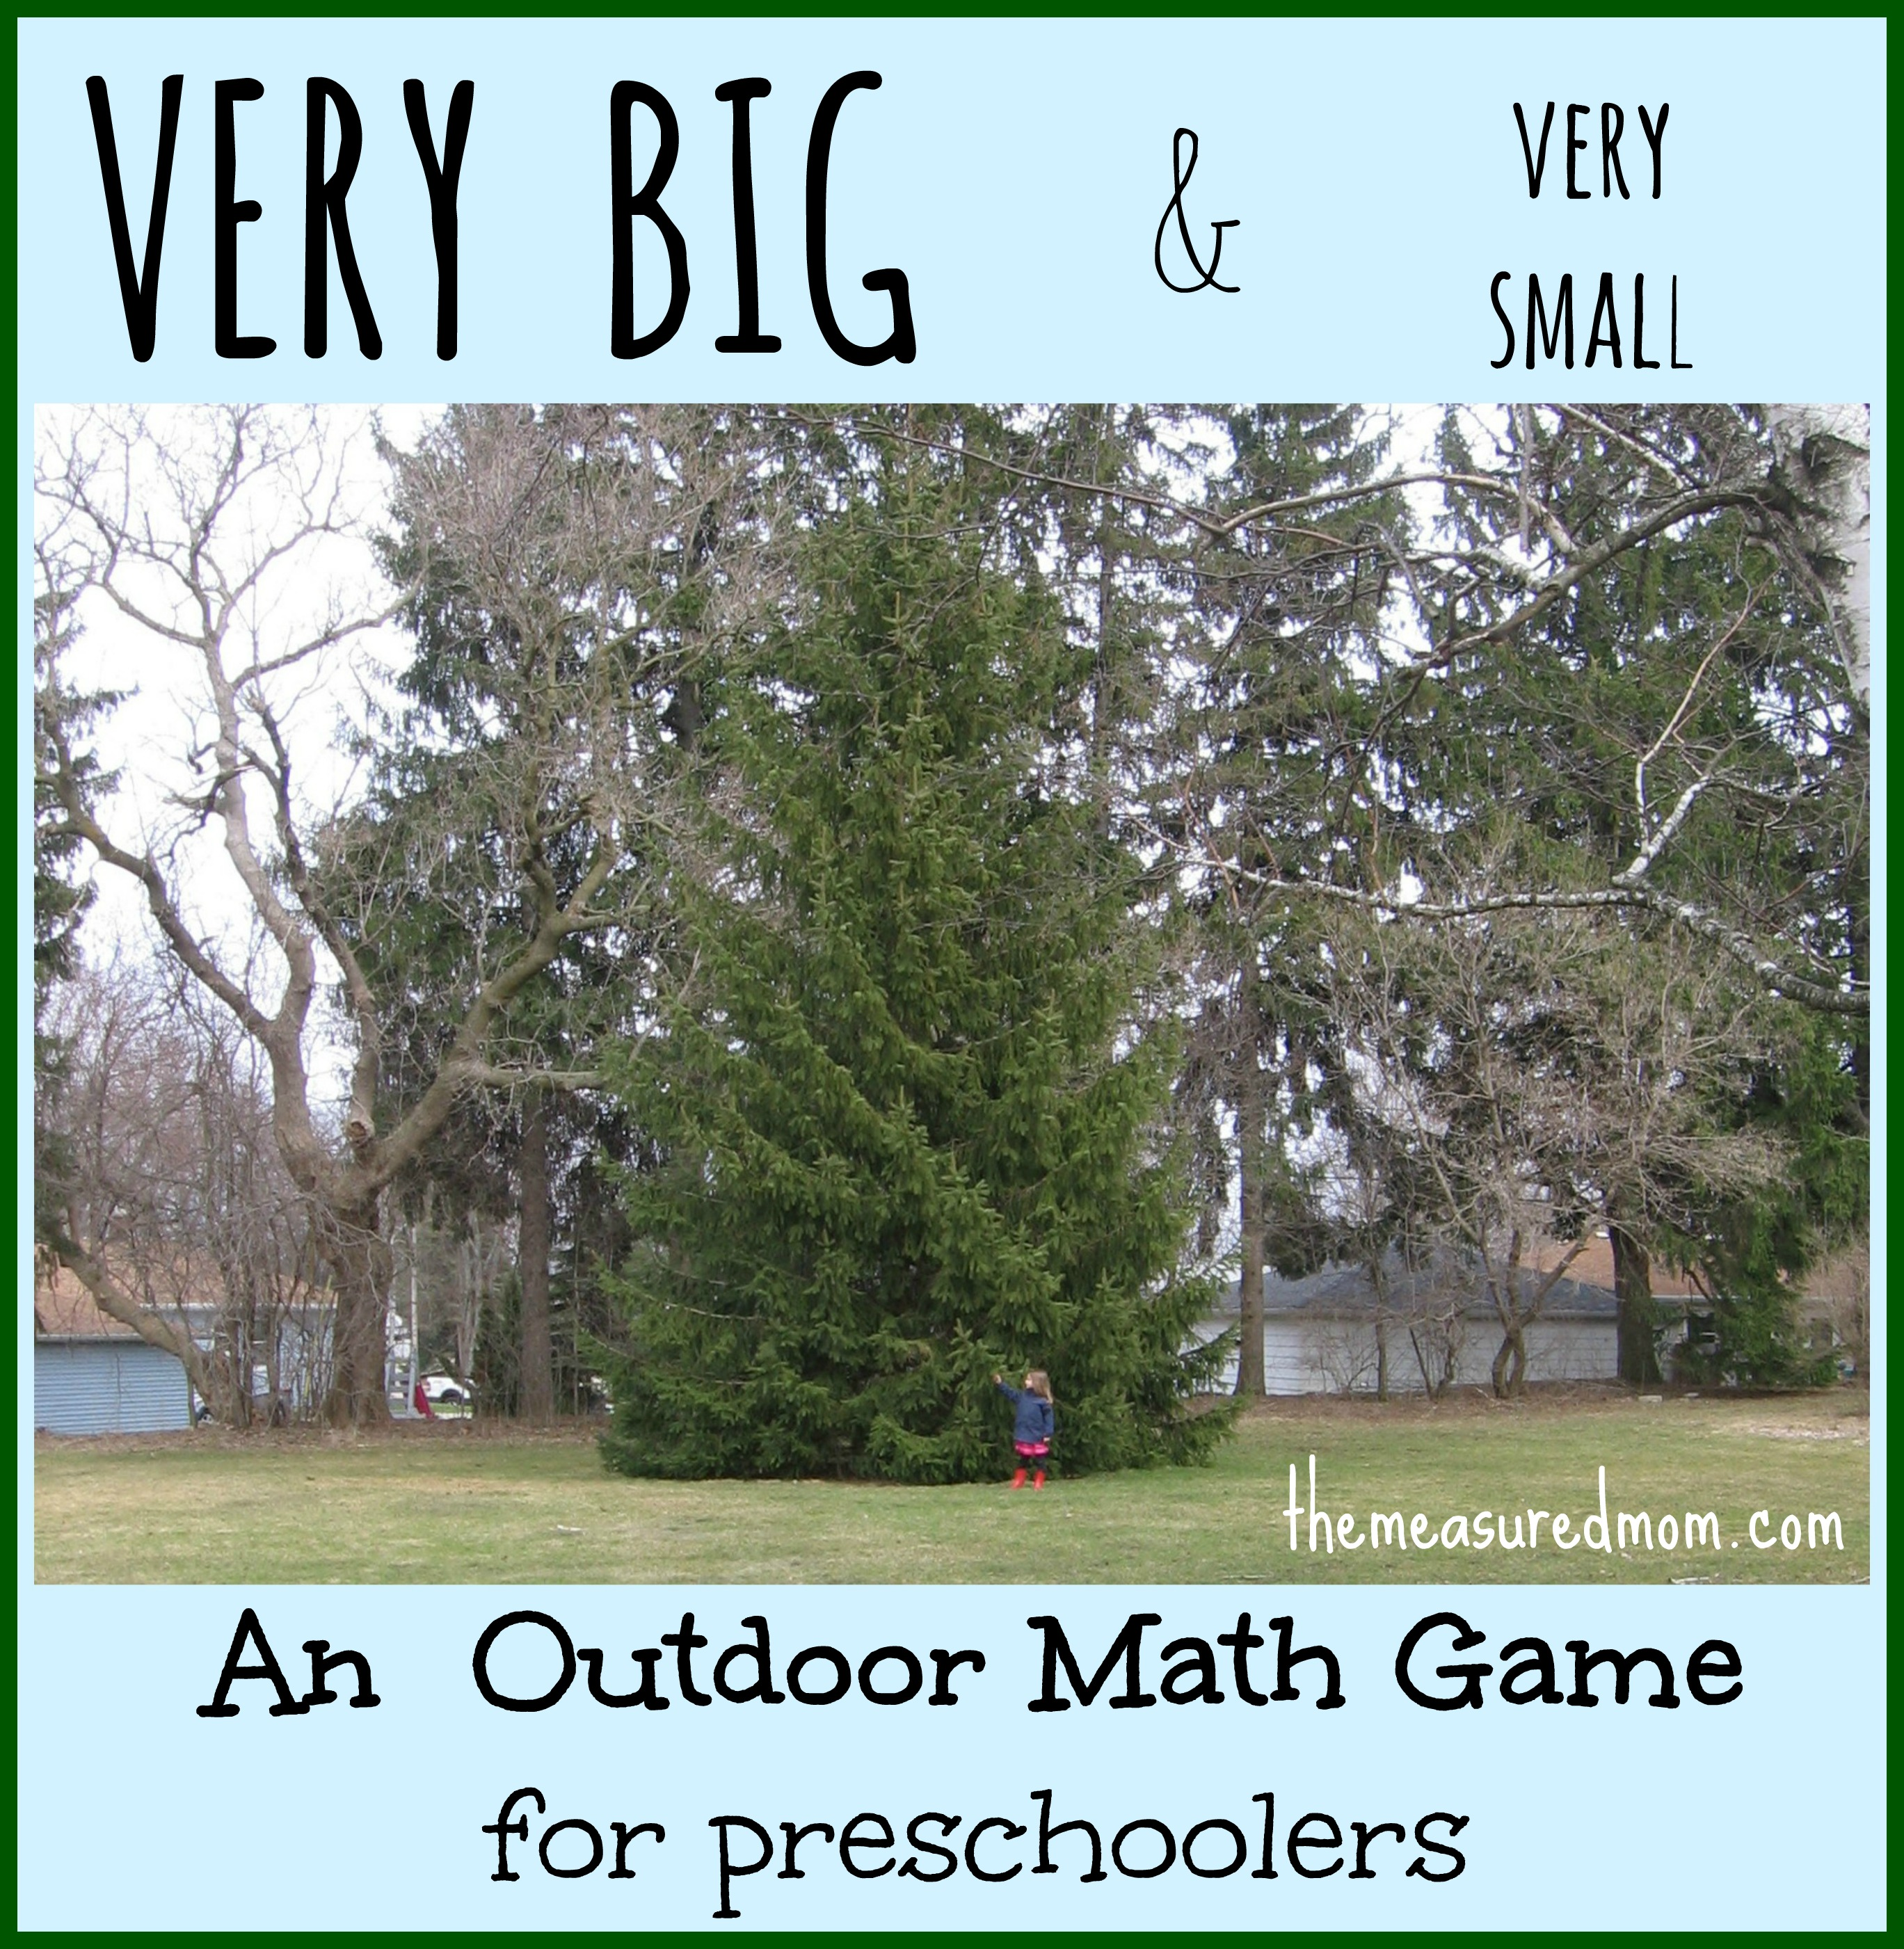 Outdoor Math Game Exploring Size The Measured Mom